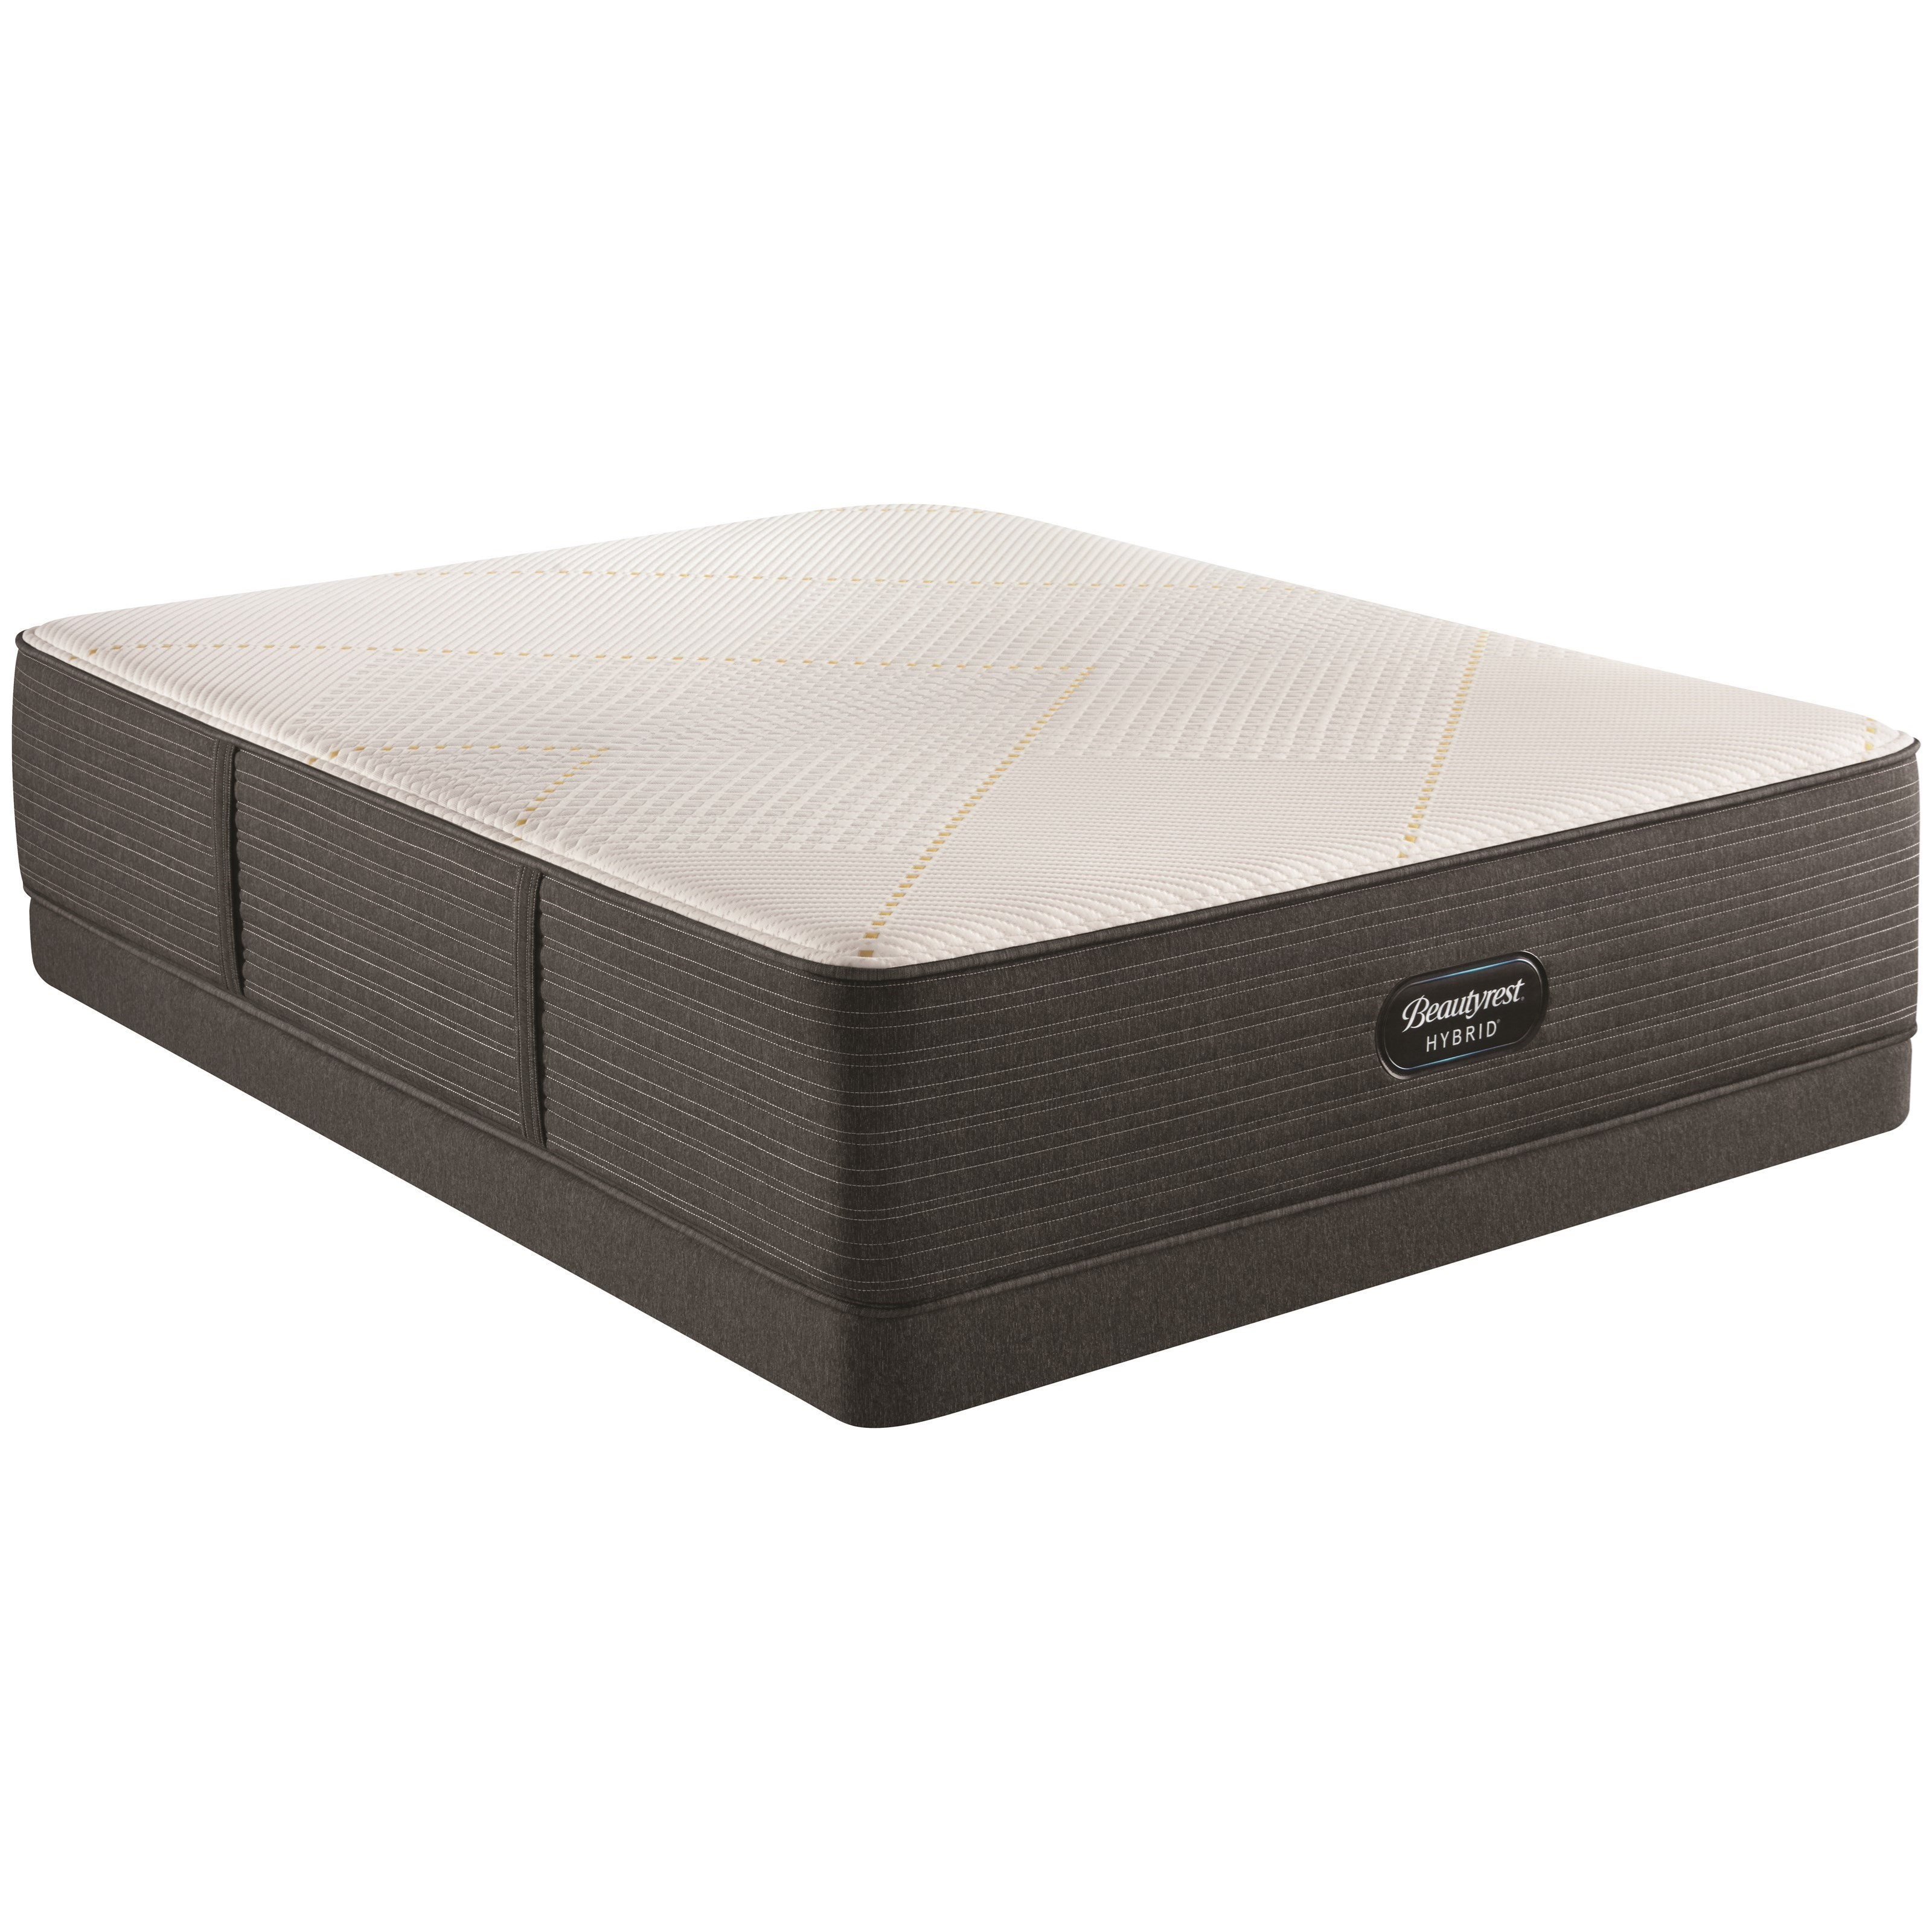 """BRX3000IM Medium Firm Twin XL 14 1/2"""" Hybrid Low Profile Set by Beautyrest at Rotmans"""